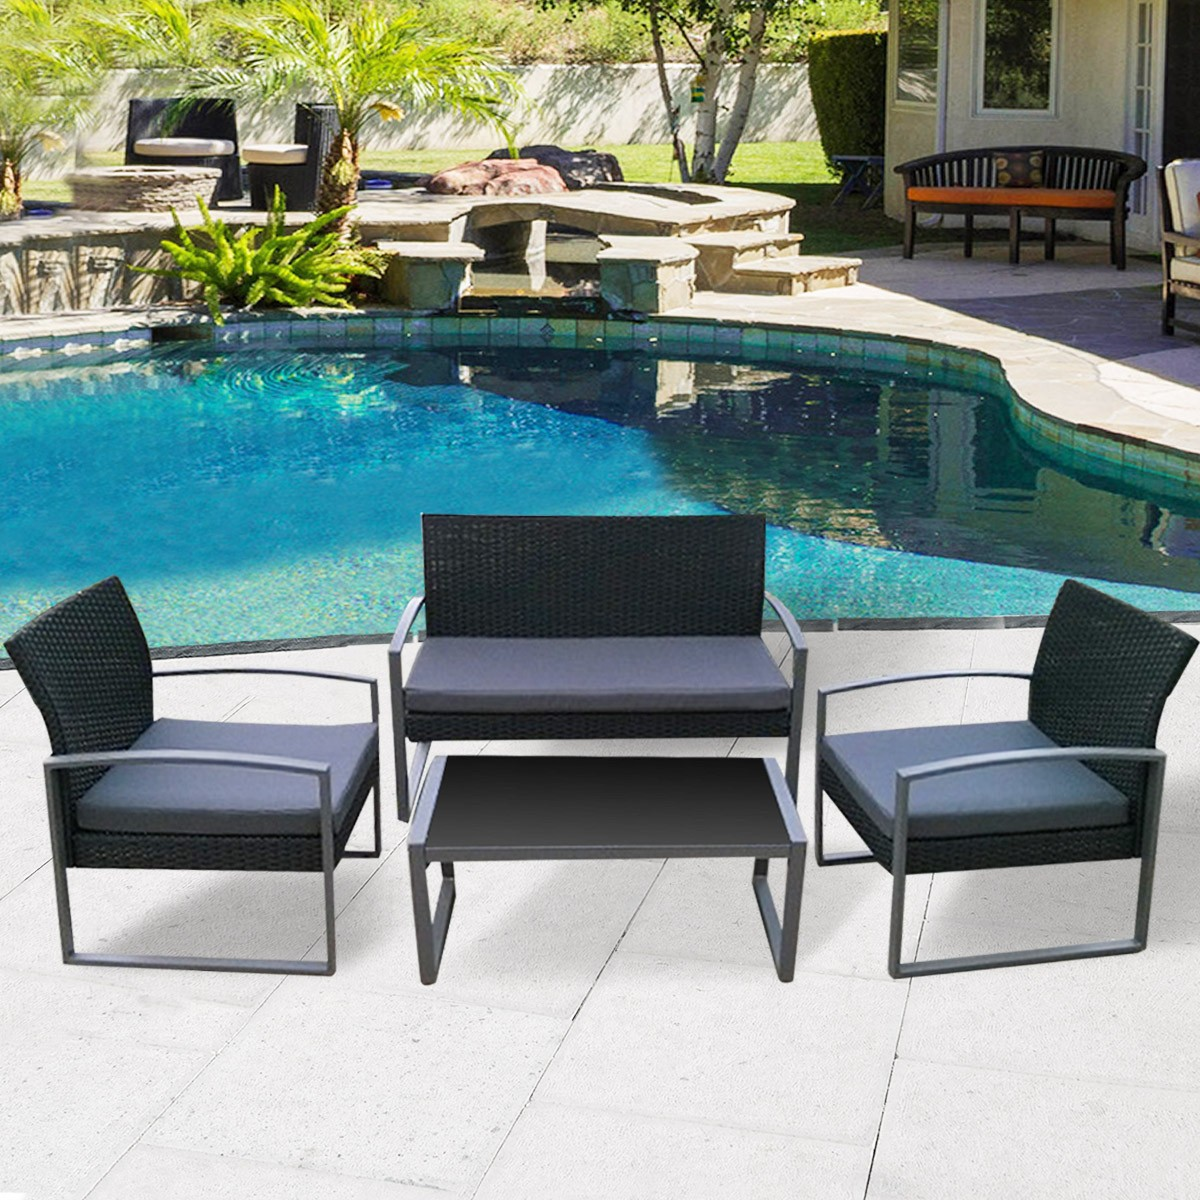 4 Pcs Outdoor Patio Black Rattan Wicker Sofa Set Garden Furniture Cushioned New Ebay